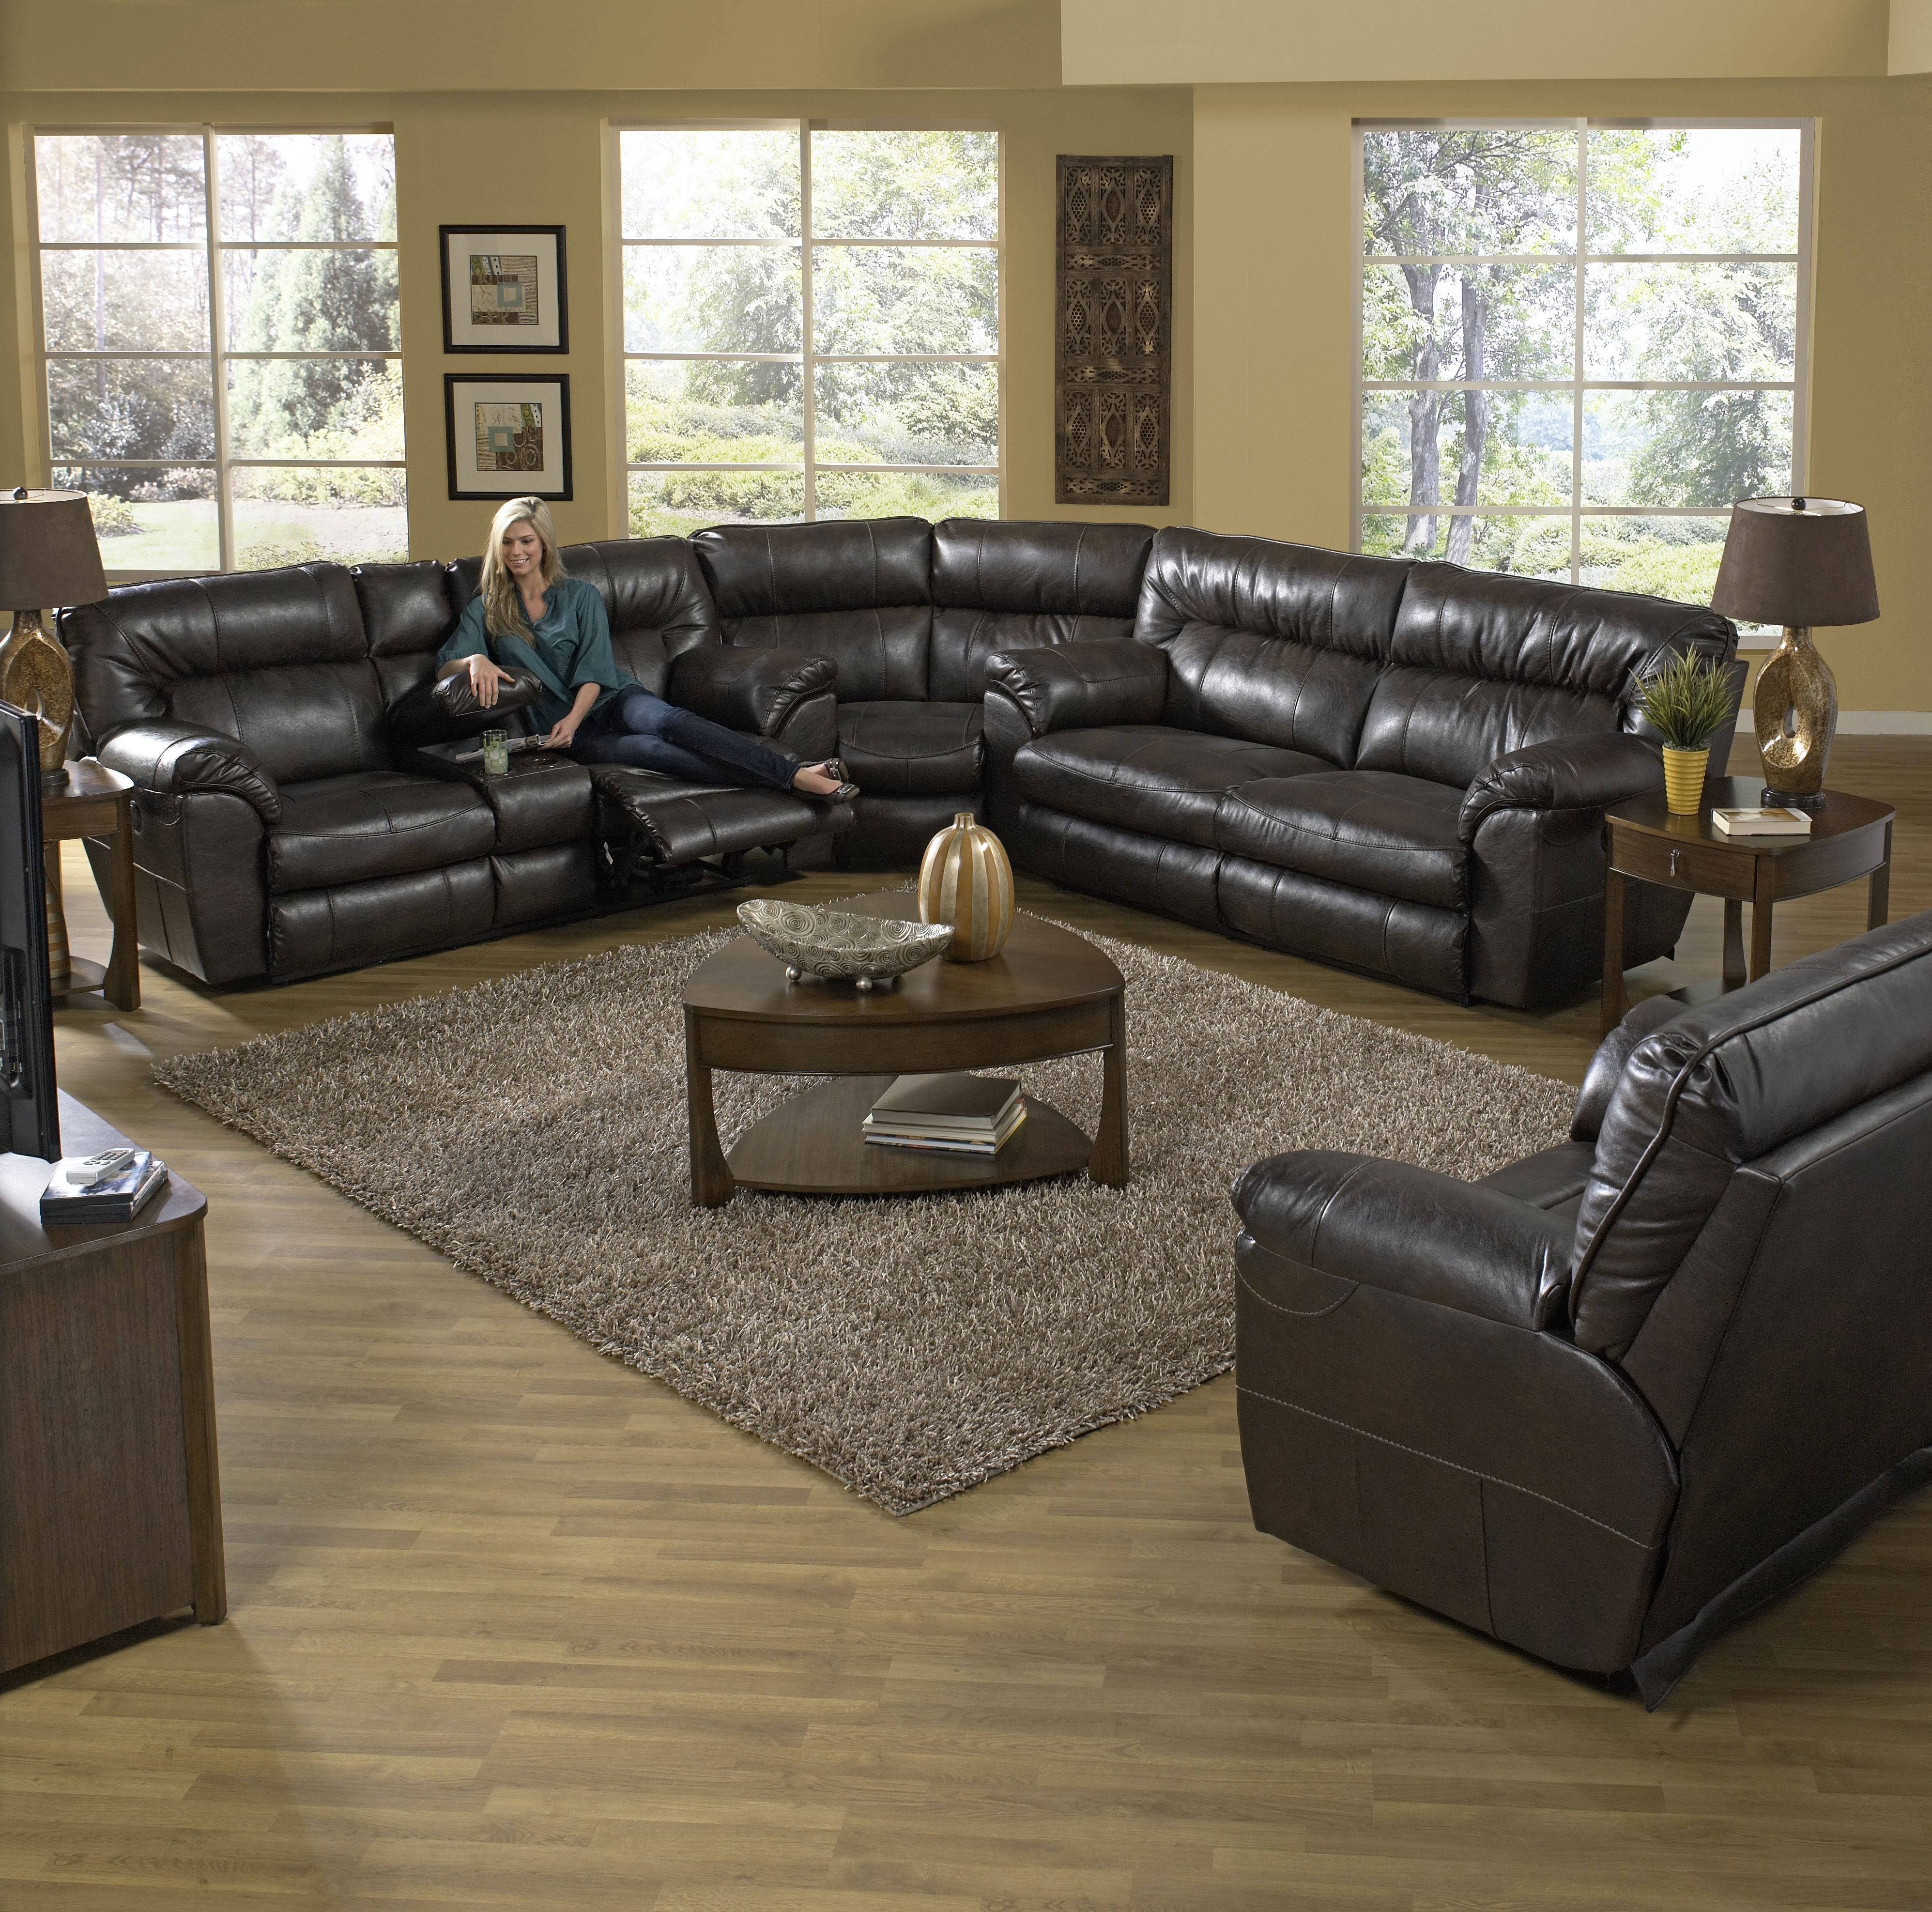 Catnapper Furniture Living Room Wedge 4048   B.F. Myers Furniture    Goodlettsville And Nashville Area, TN